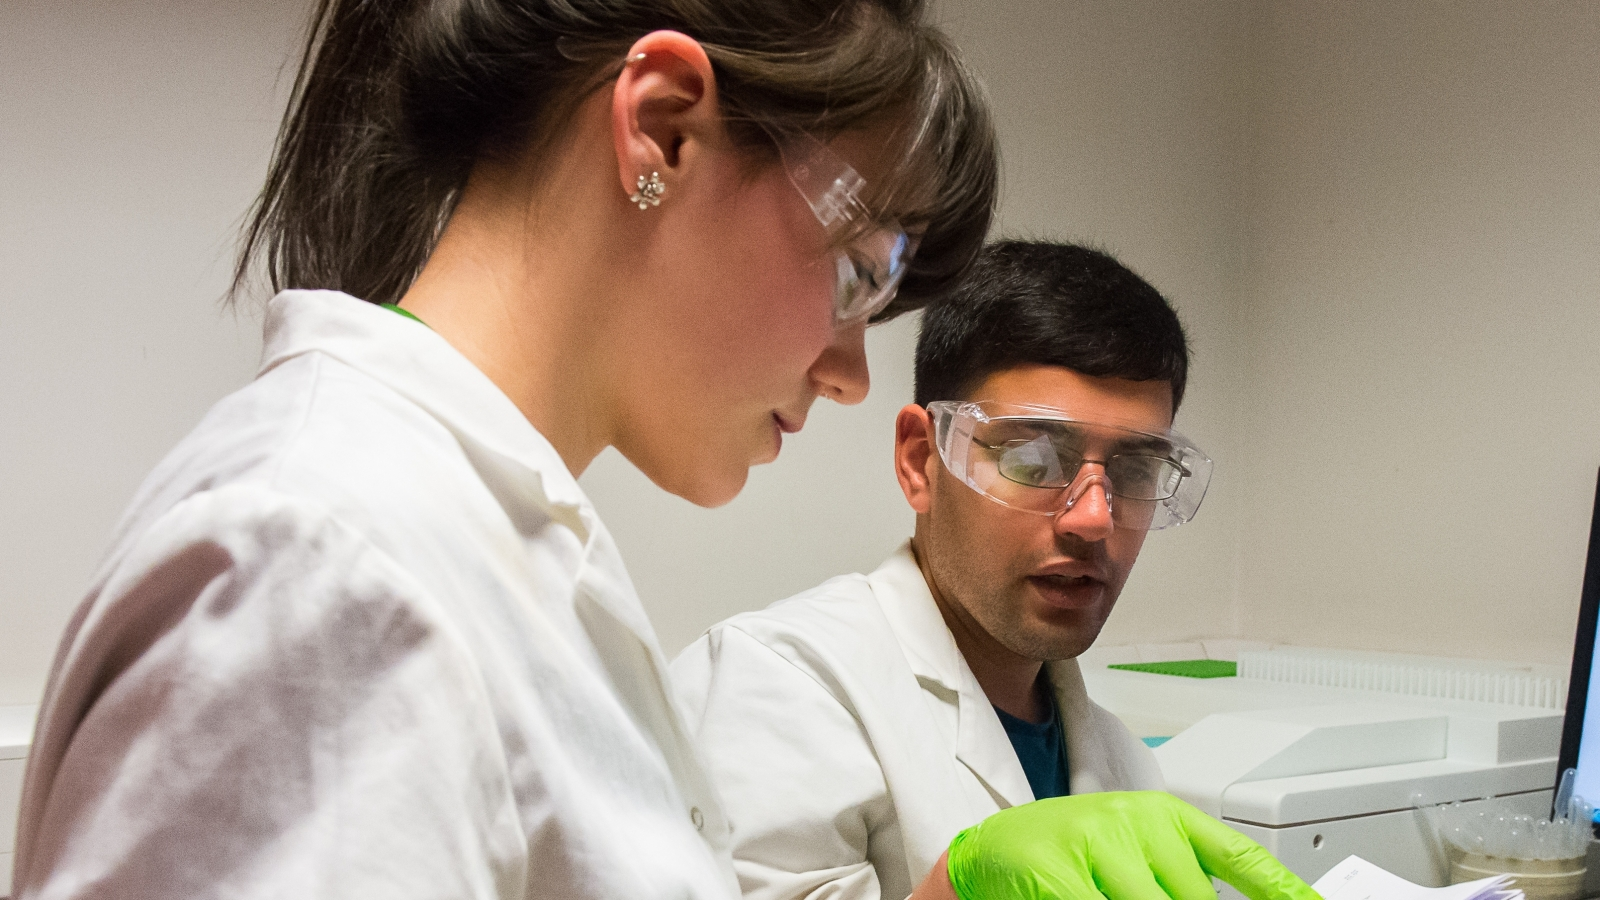 Science students in lab coats and safety glasses - desmonstrating qualification choices